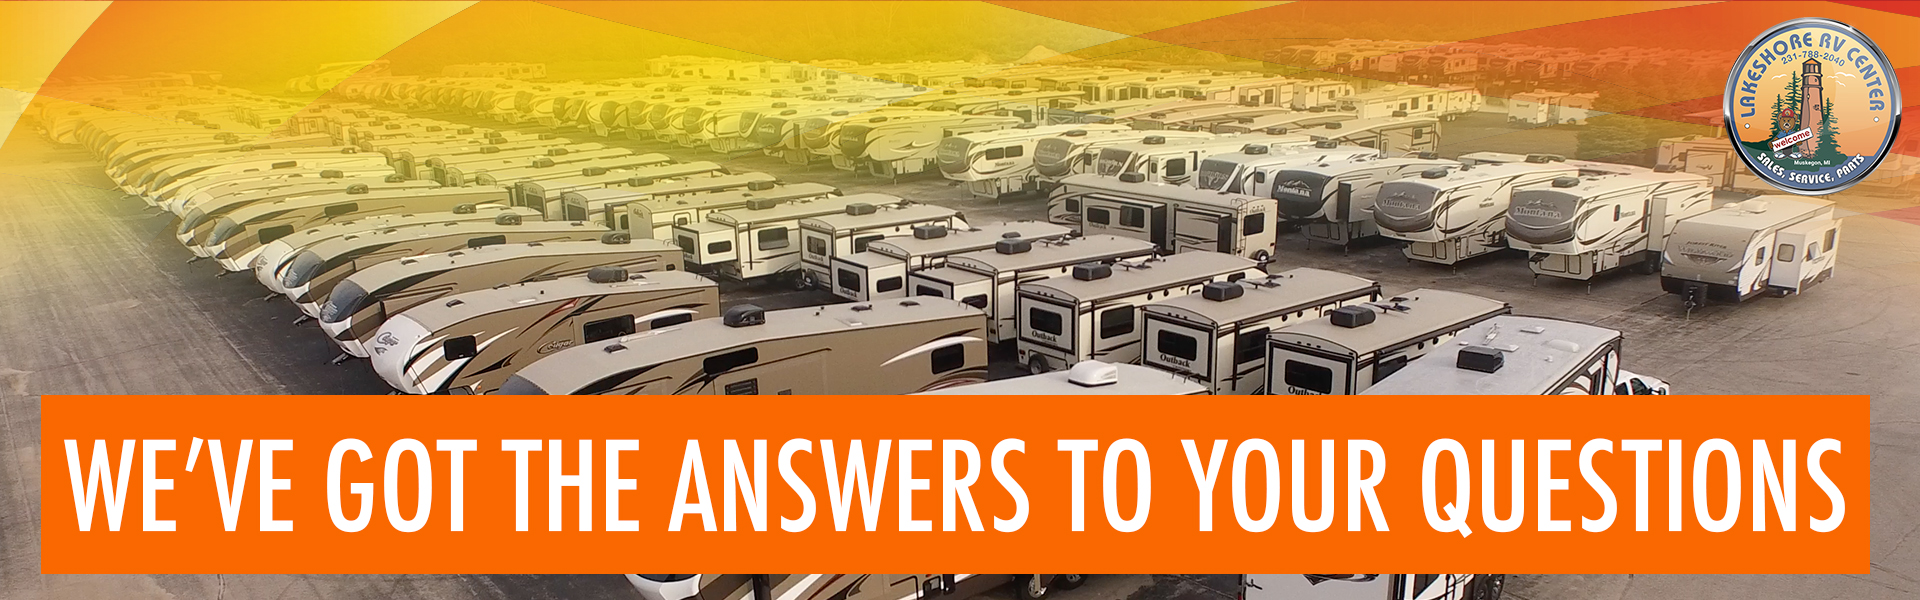 weve-got-answers-to-your-questions